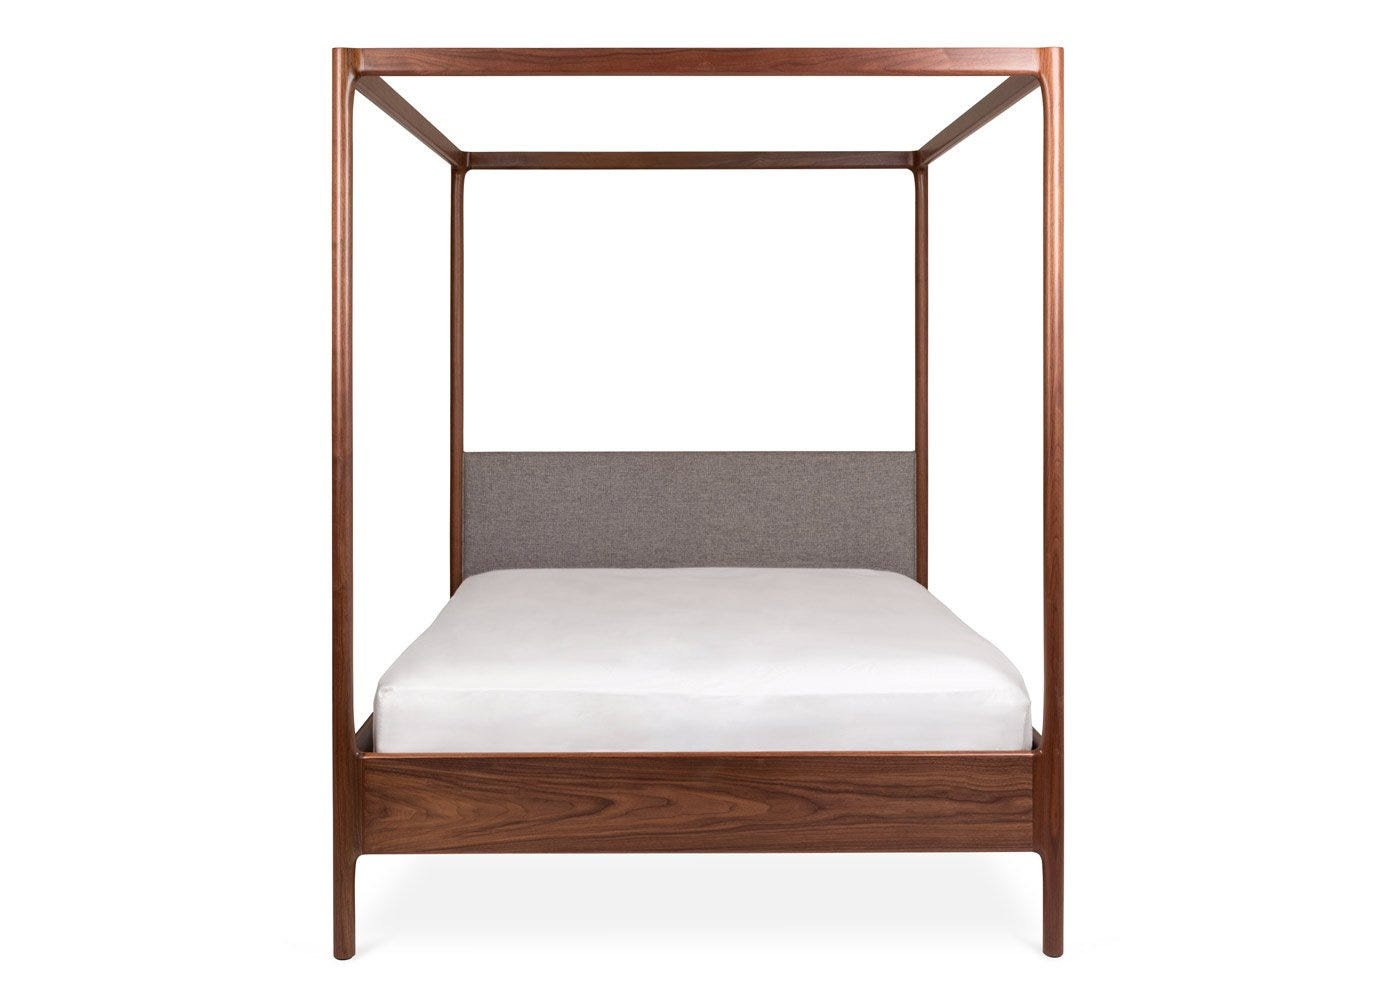 Marlow 4 Poster Bed Front Profile.